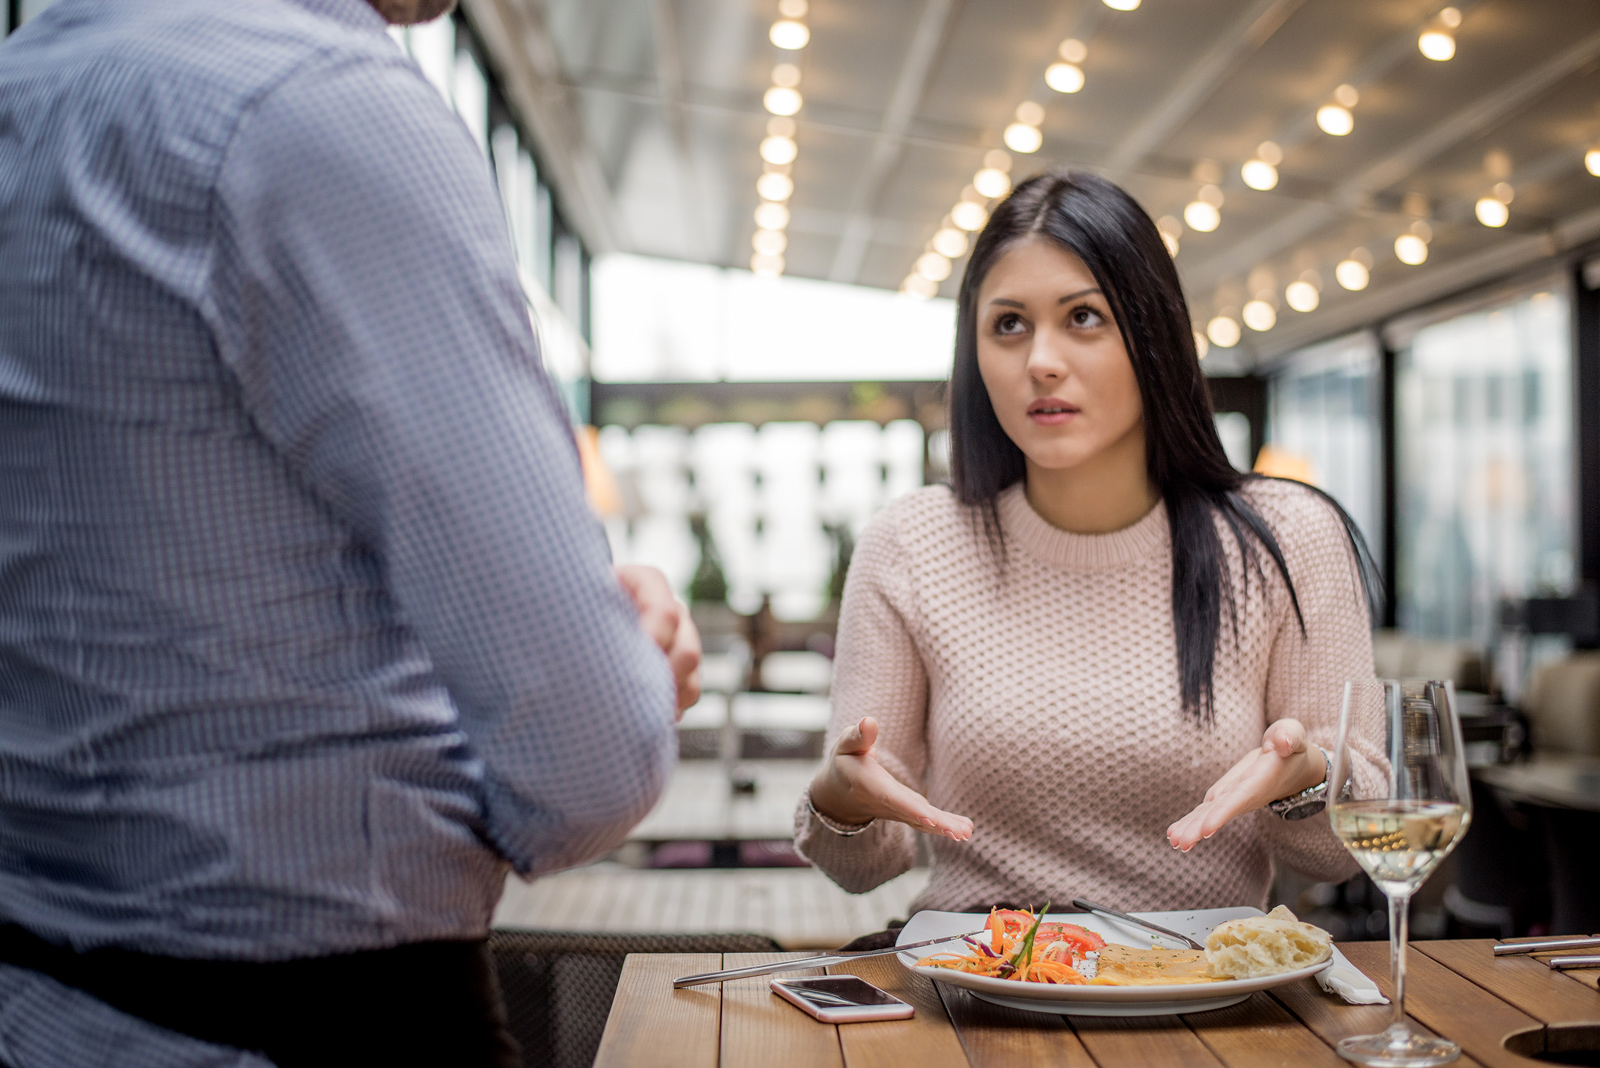 Woman unhappy with her food